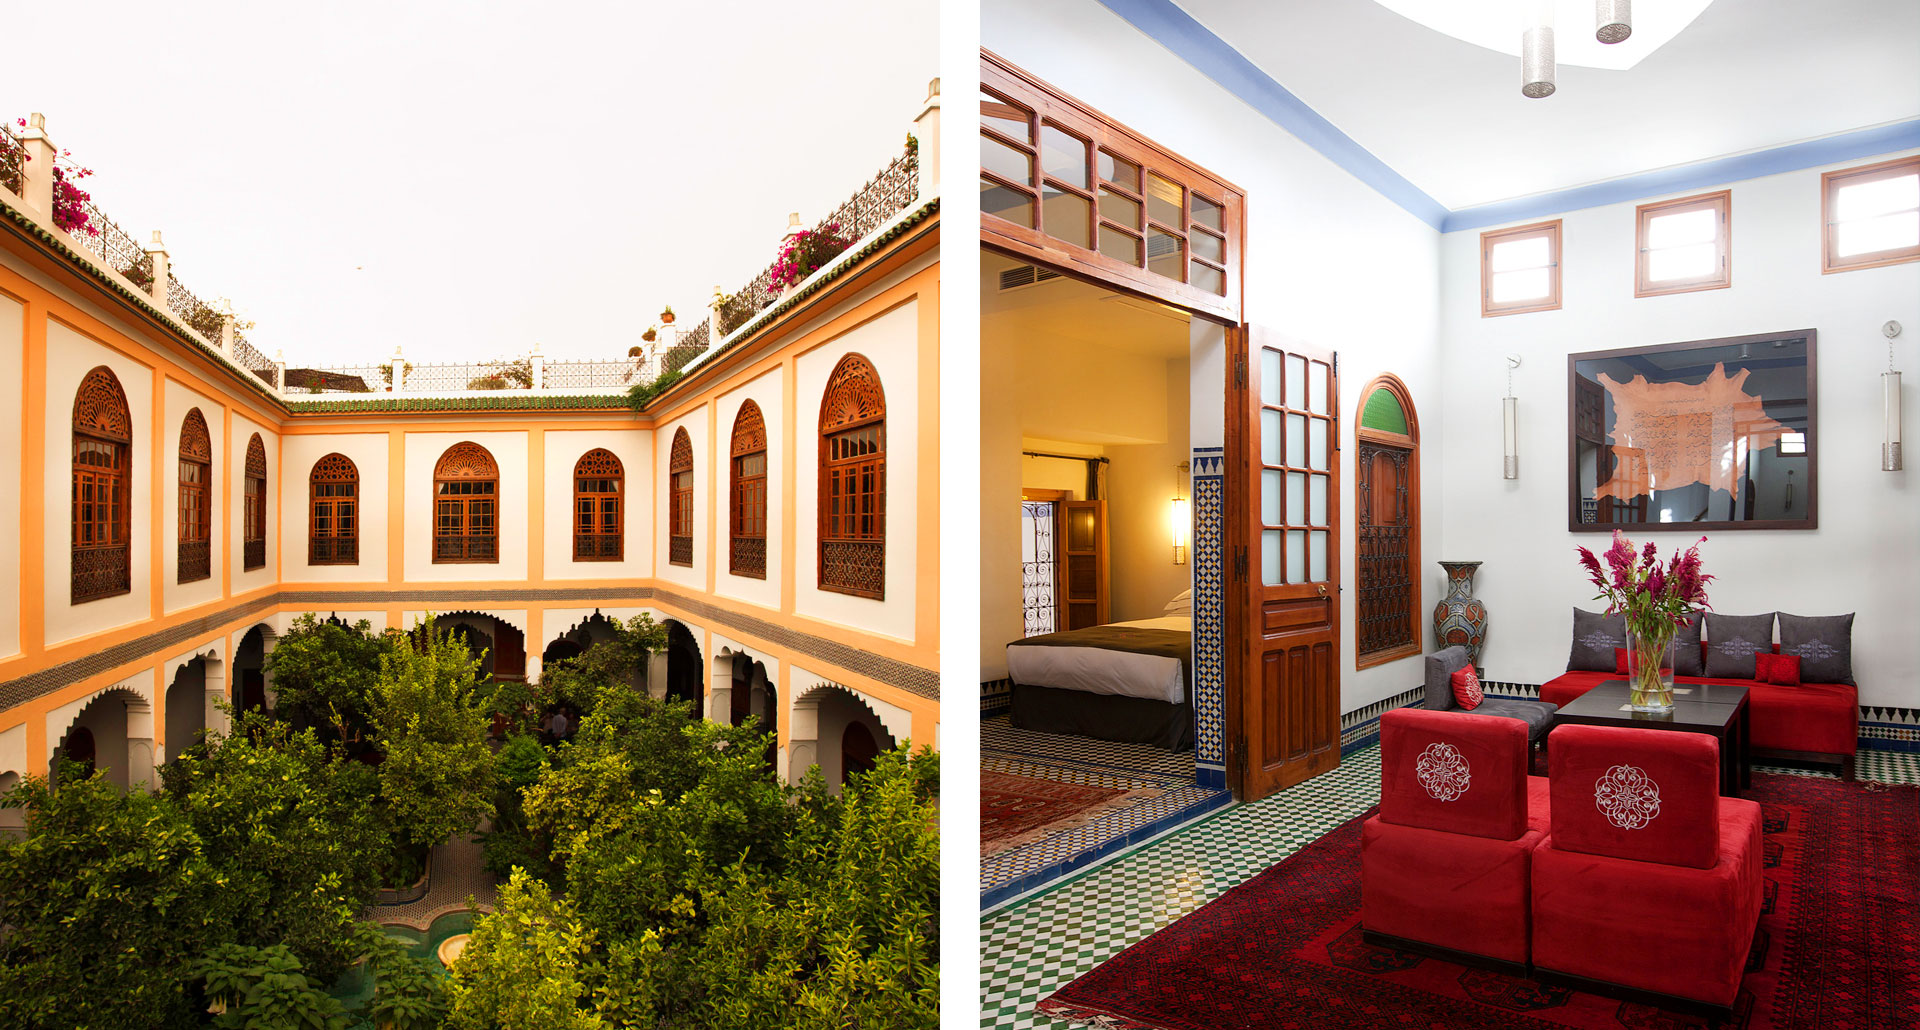 Palais Amani - boutique hotel in Fes